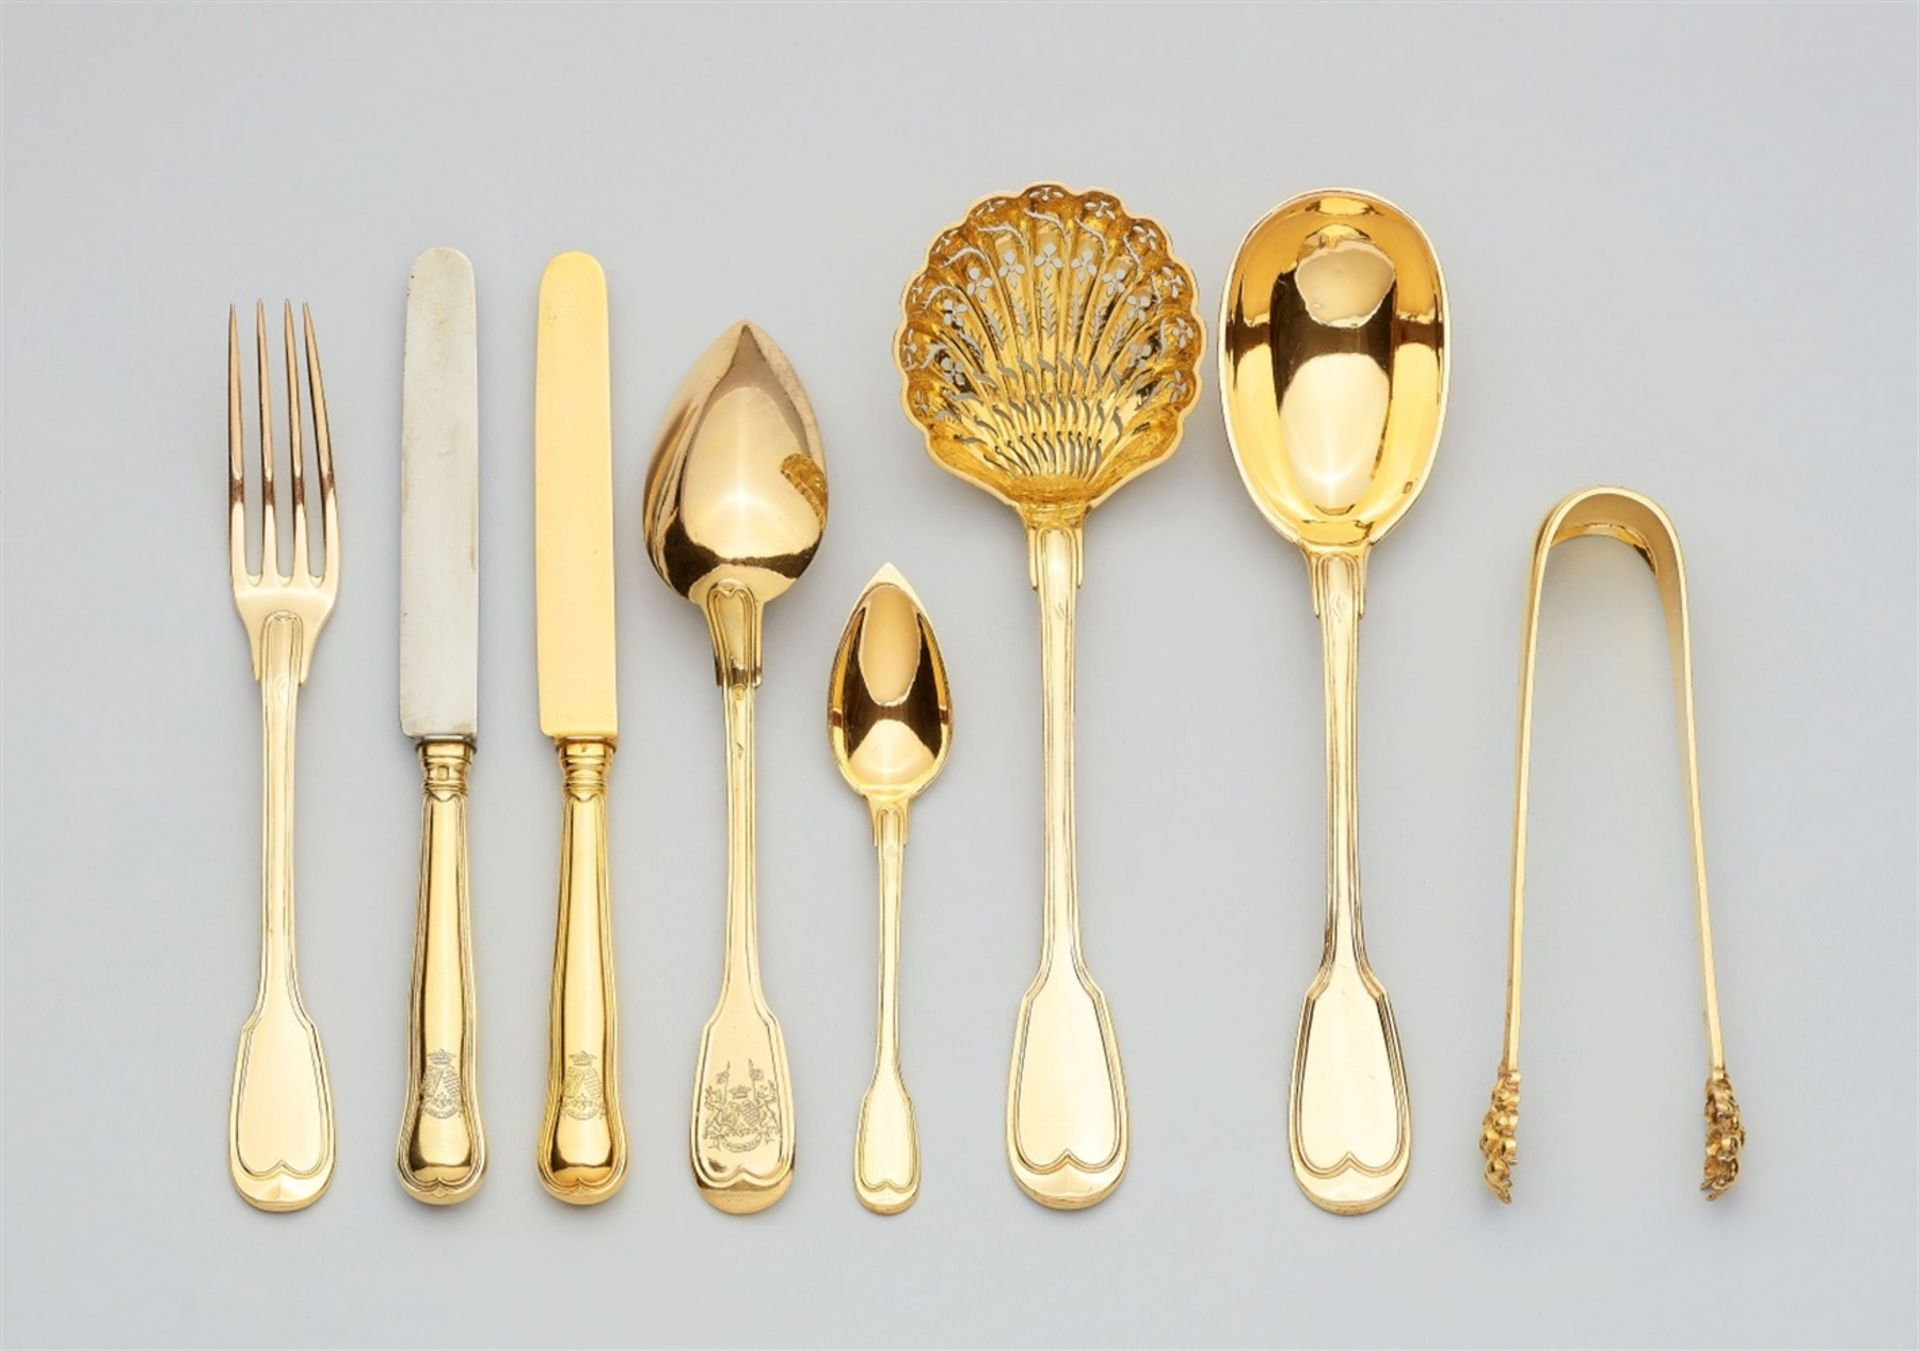 Los 713 - A Parisian silver dessert cutlery set in the original caseSilver; gold-plated. A 121 piece set of